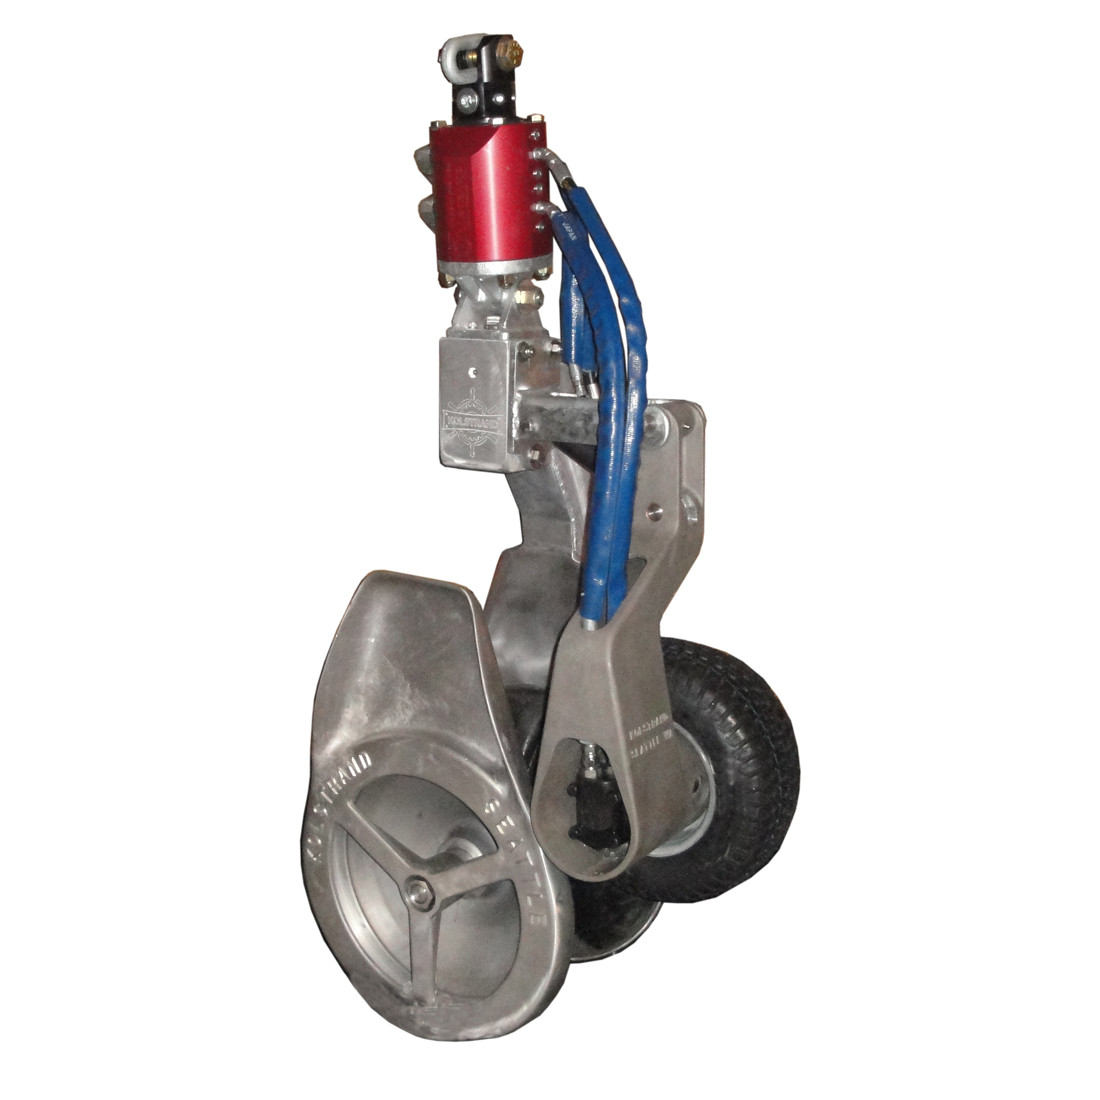 Kolstrand 20 Inch Power Block with Vulcanized Rubber Sheave and  Yoke-mounted PowerGrip with Hydraulic Swivel Arrangement and PowerGrip  Control Panel